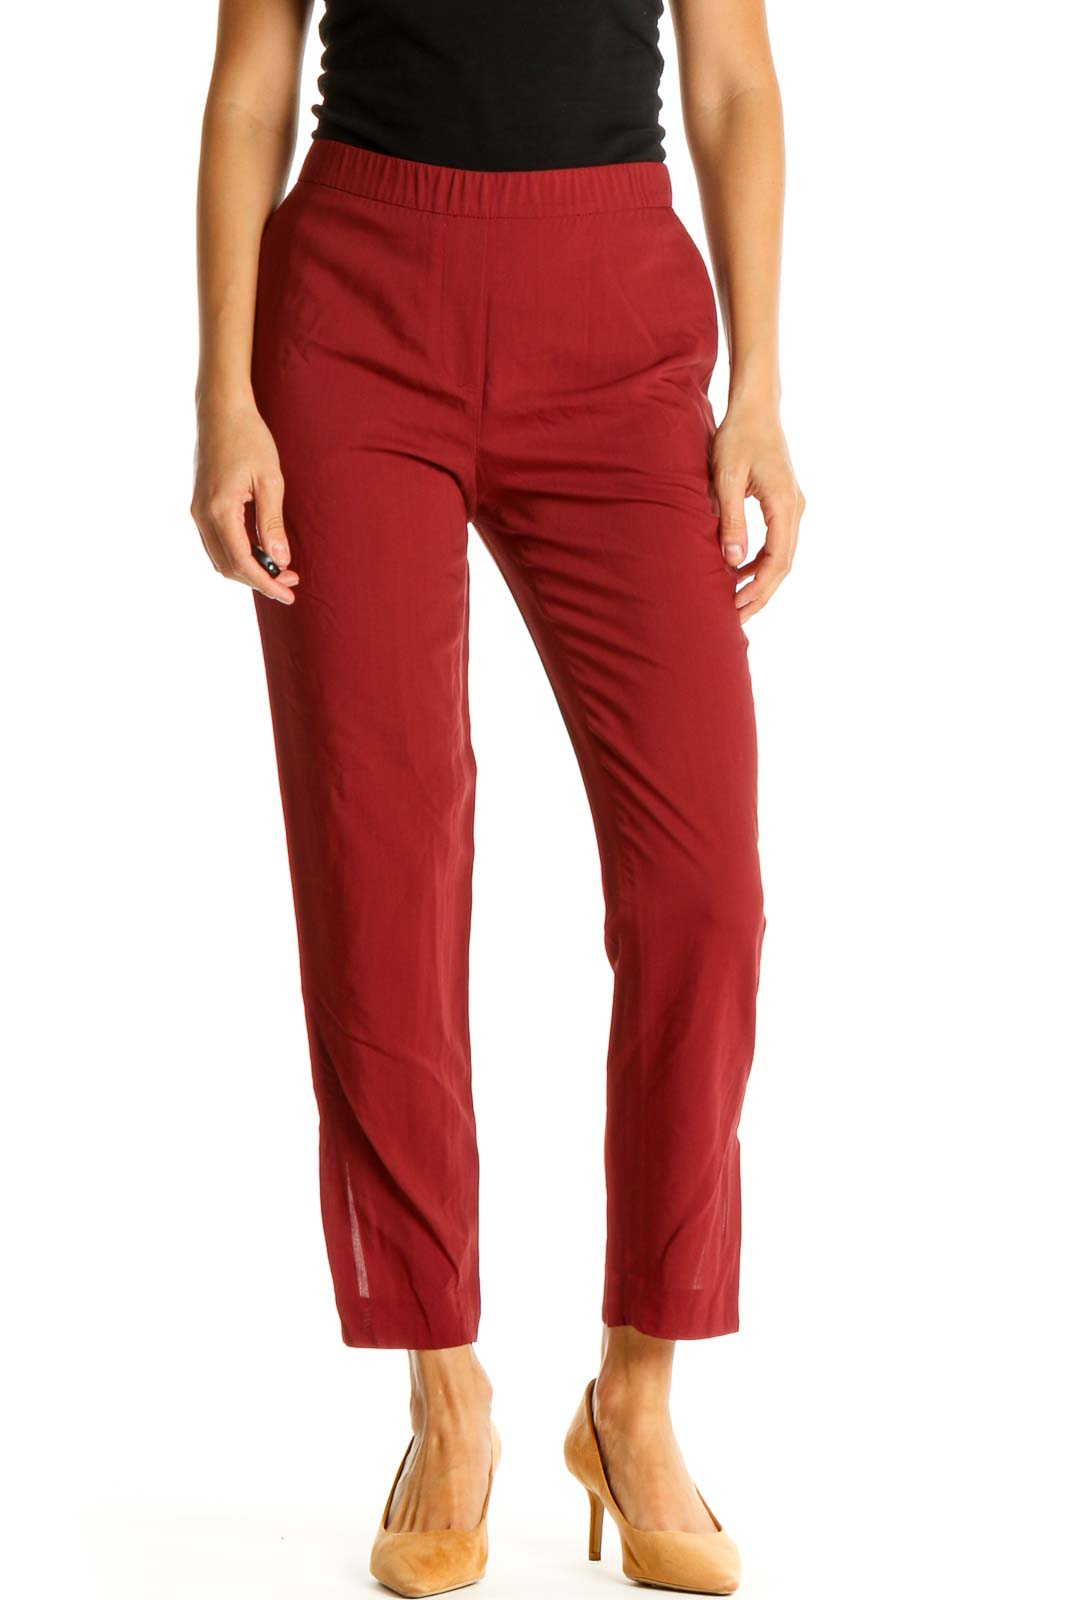 Red Solid All Day Wear Pants Front